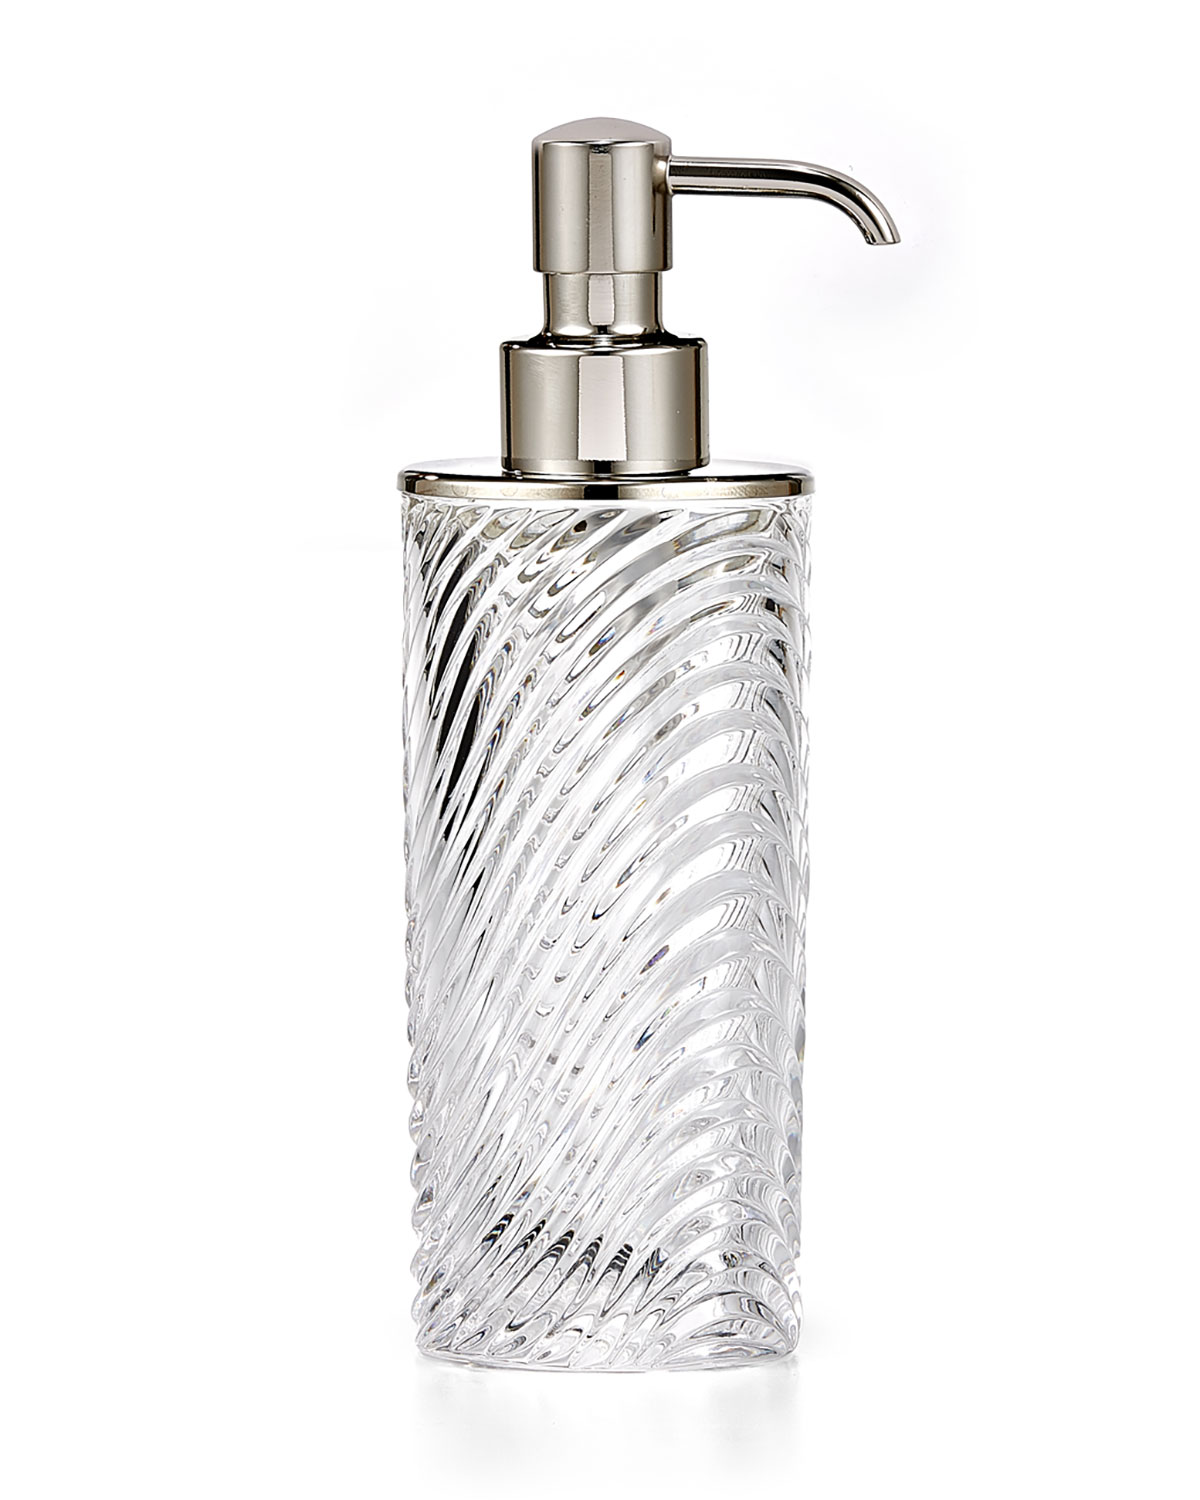 Onda Pump Dispenser with Polished Nickel Pump